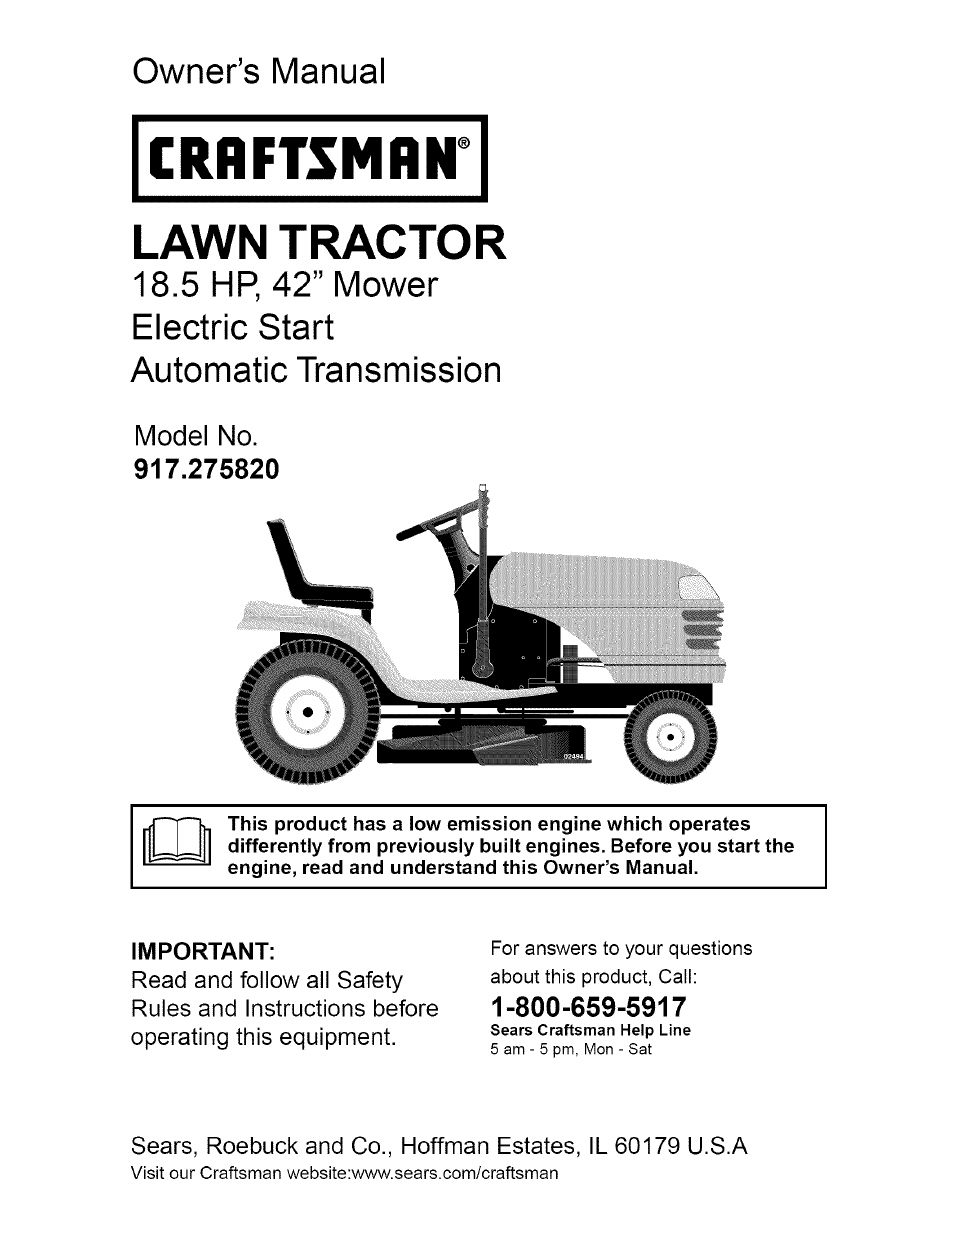 craftsman dlt 3000 917 275820 user manual 56 pages rh manualsdir com craftsman lawn mower model 944 manual craftsman snowblower model 944 manual